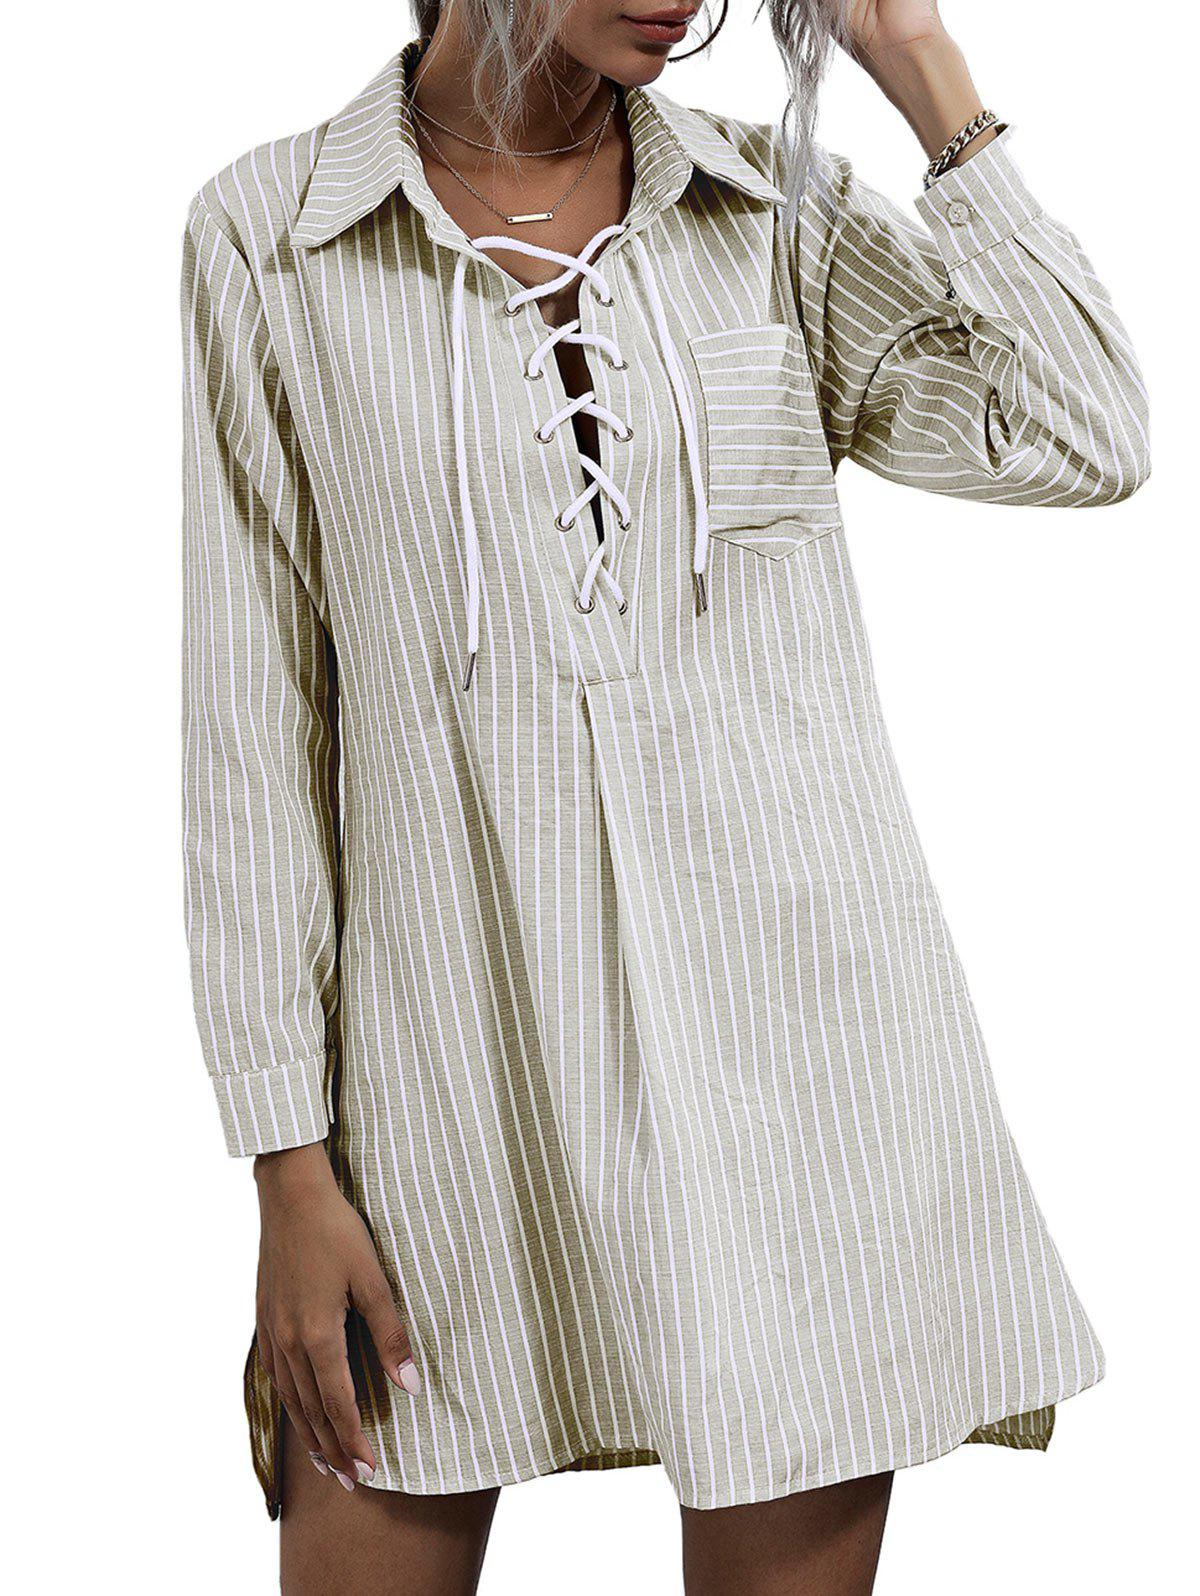 Striped Front Pocket Lace-up Shirt Dress - LIGHT COFFEE XL